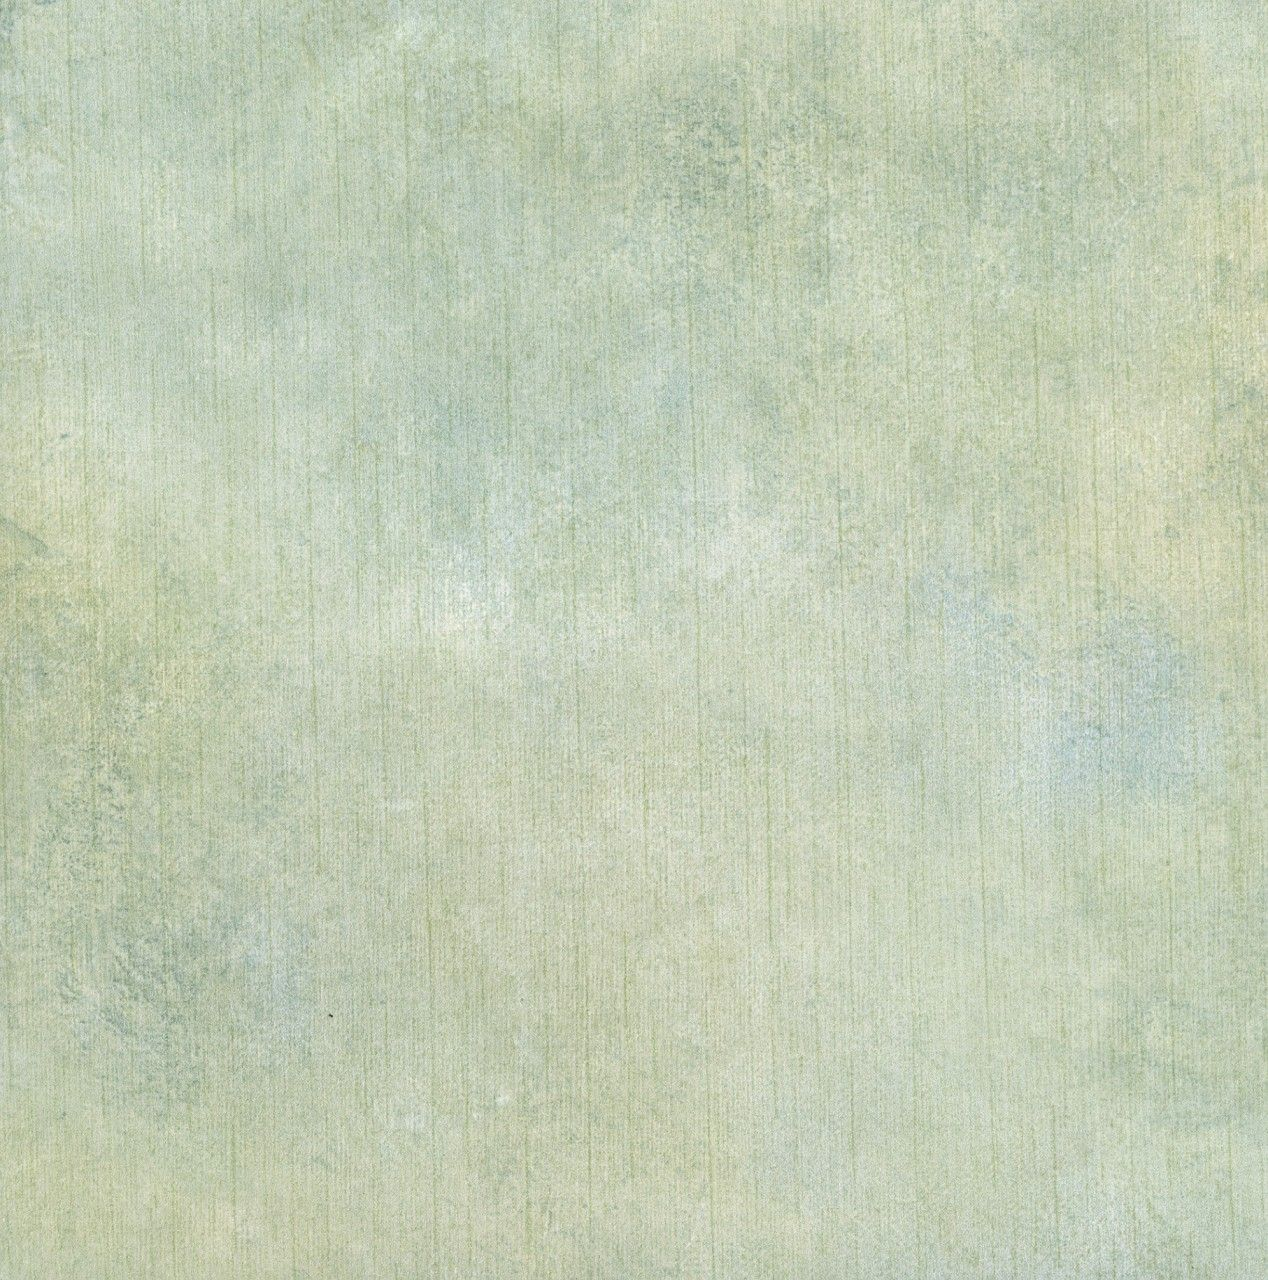 contemporary wallpaper texture textured-#16